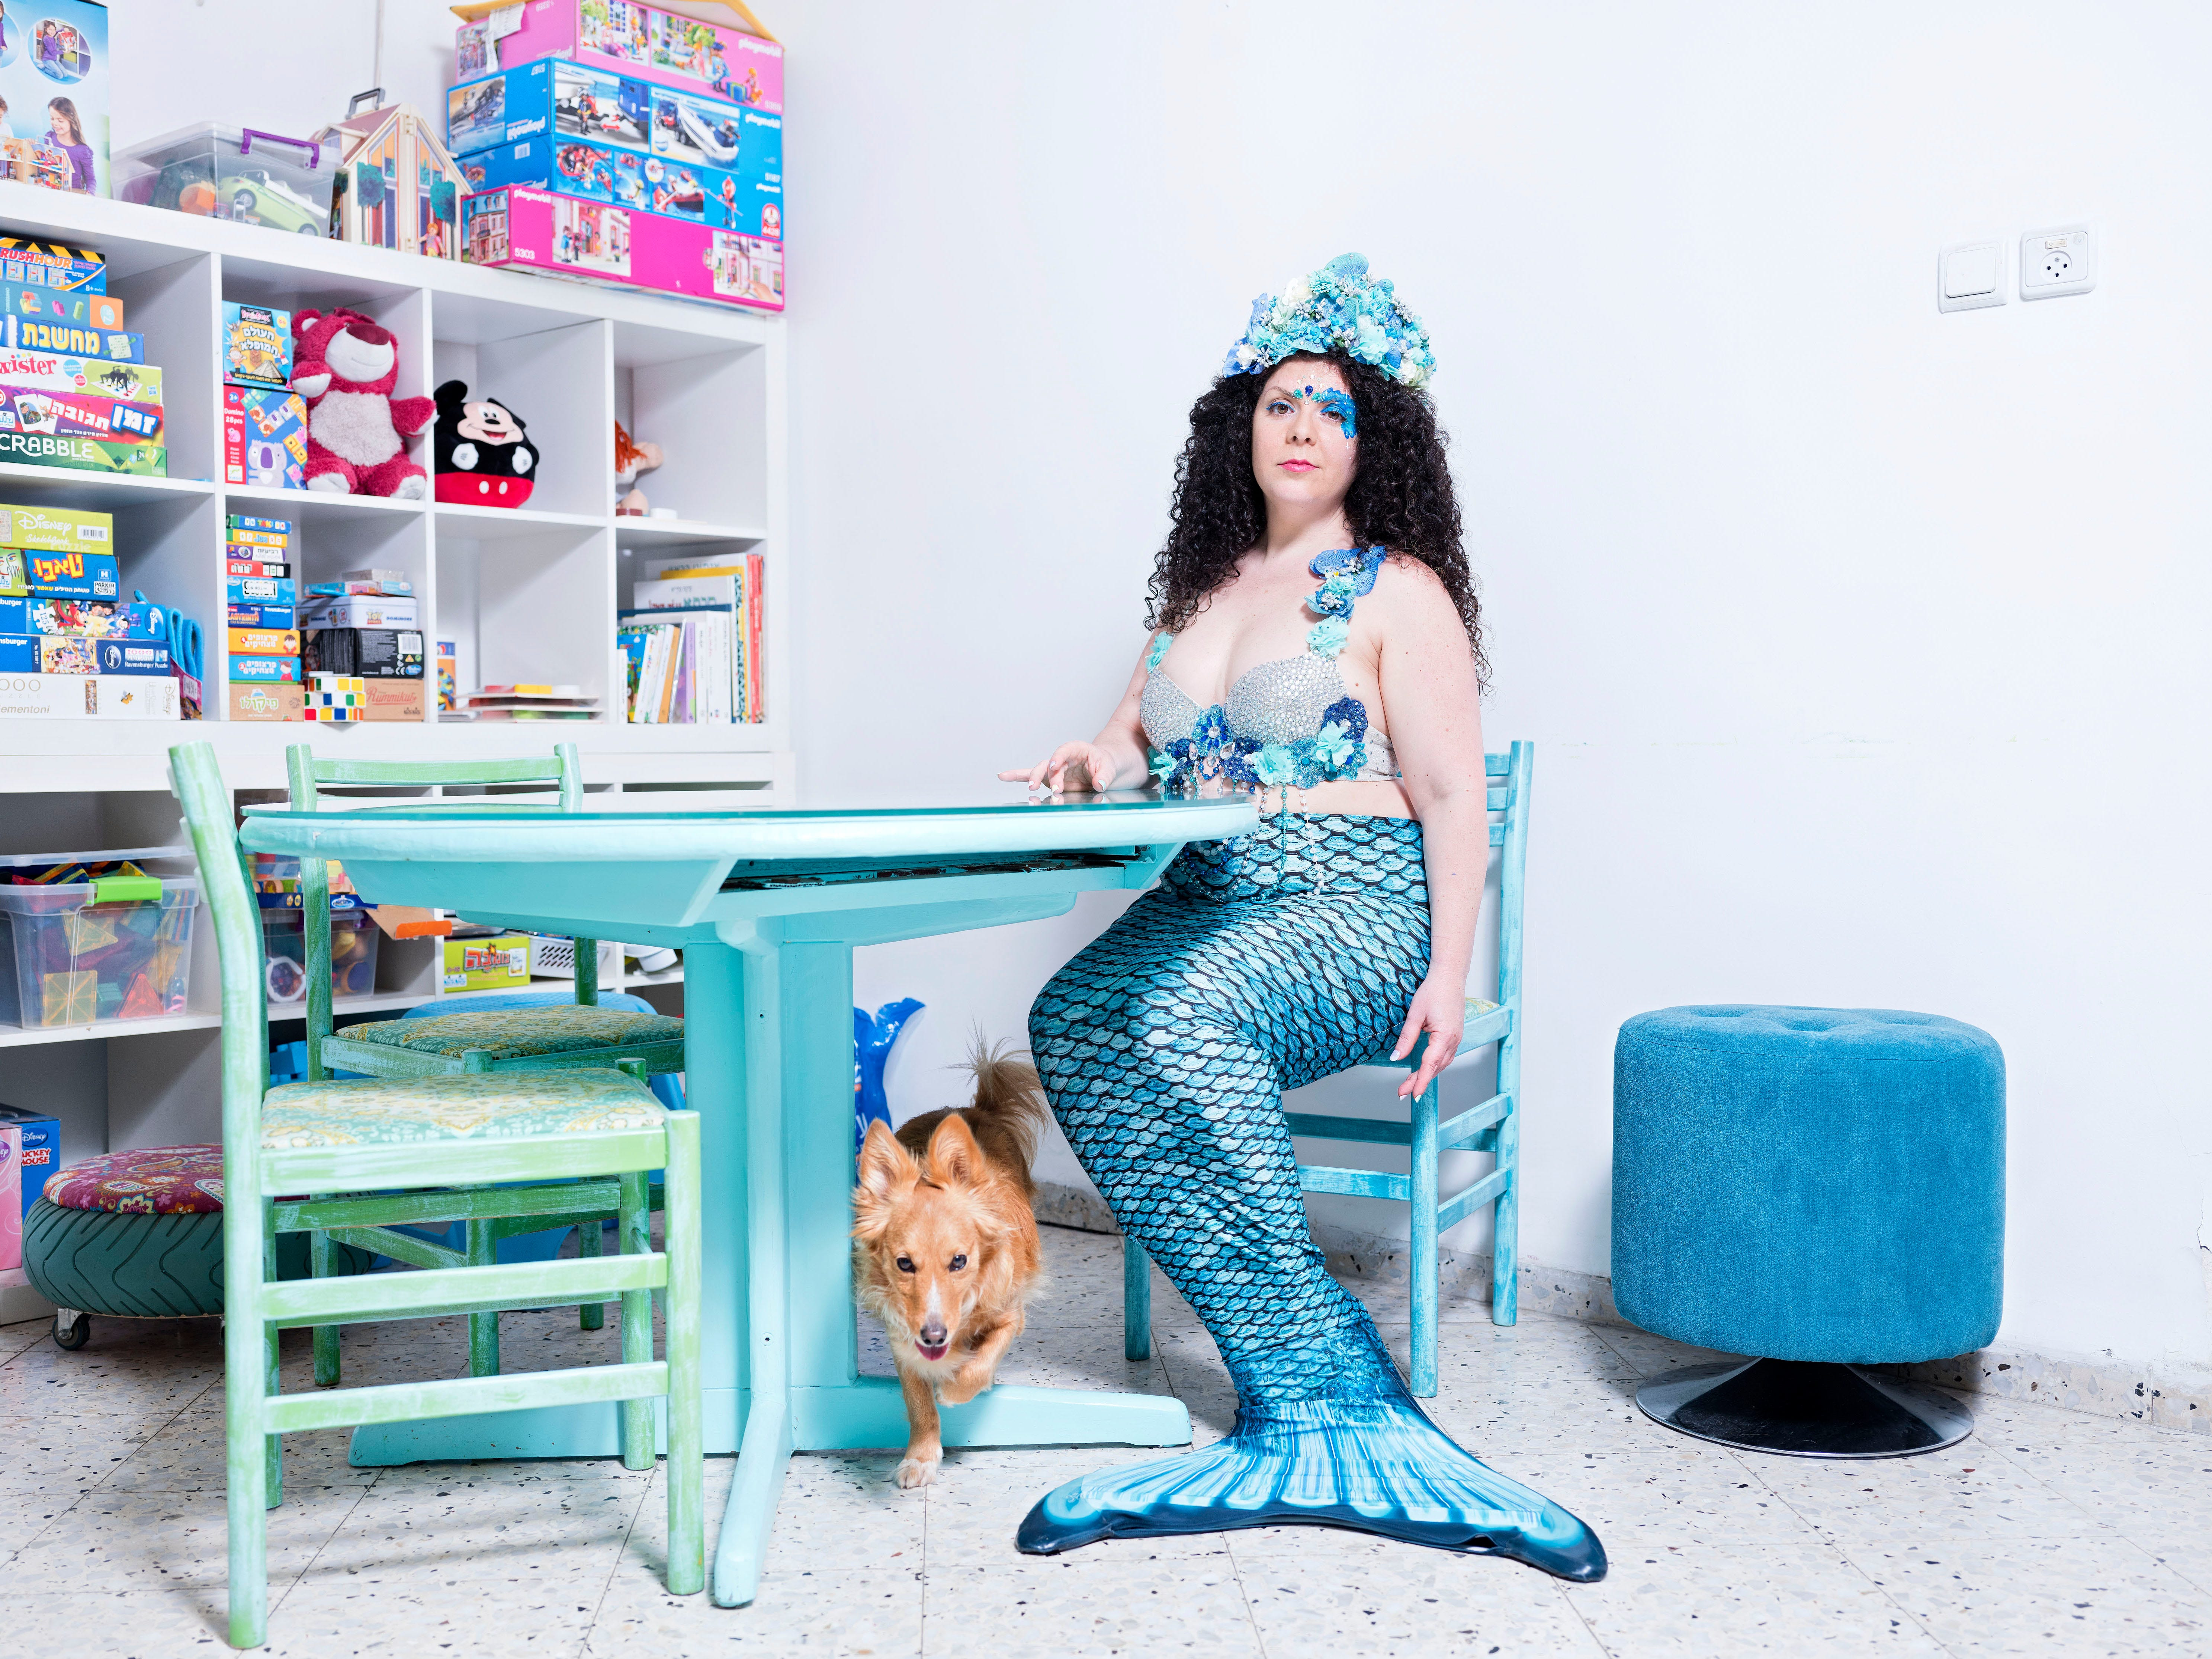 In this Monday, March. 4, 2019 photo, Inbar Ben Yakar, a member of the Israeli Mermaid Community, poses for a portrait as she wears a mermaid tail at her home in Kiryat Yam, Israel.